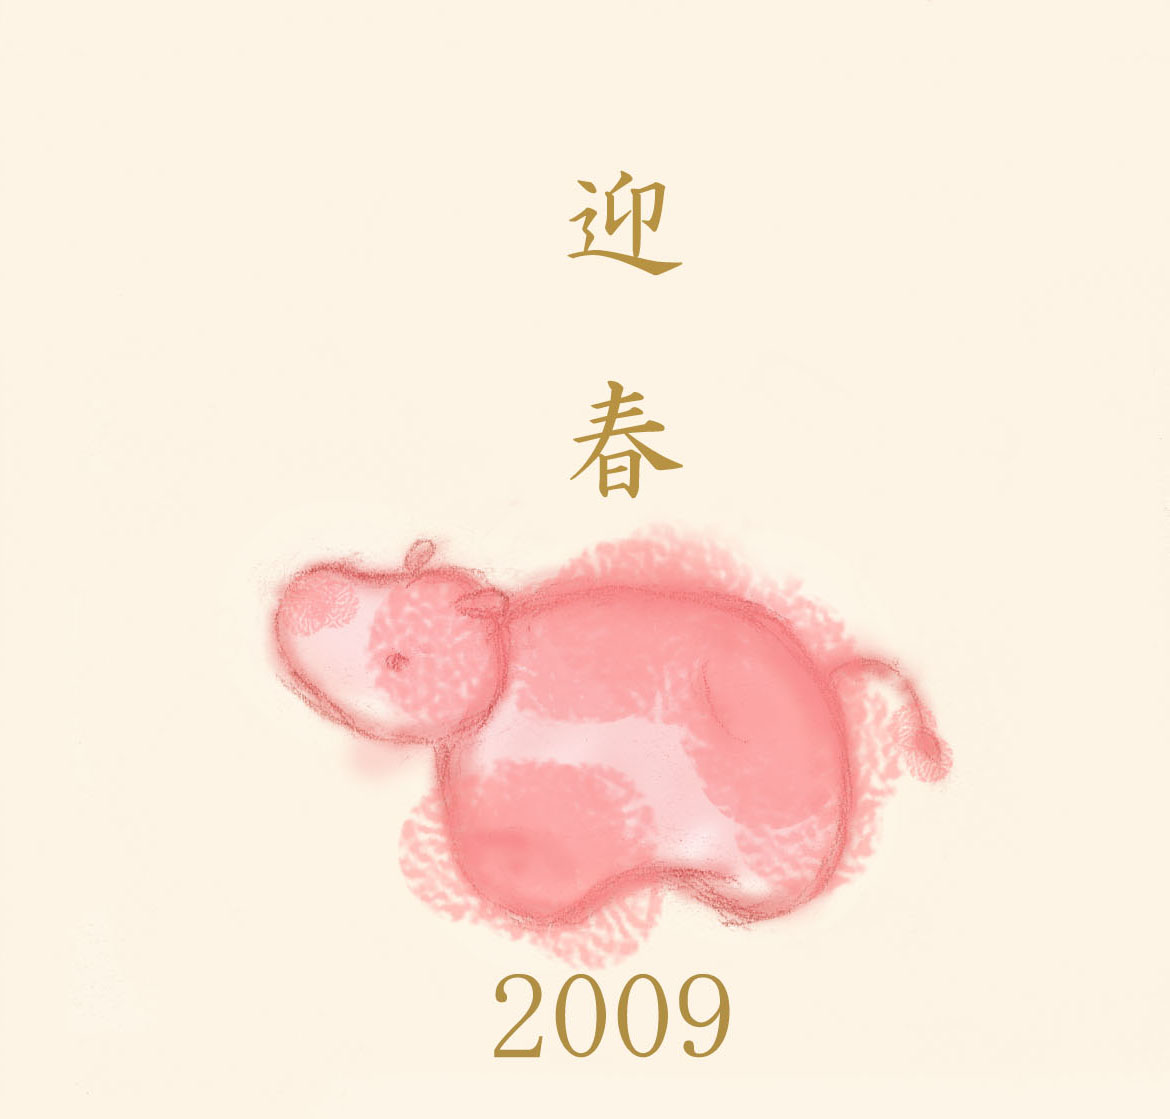 New Year Greeting 2009